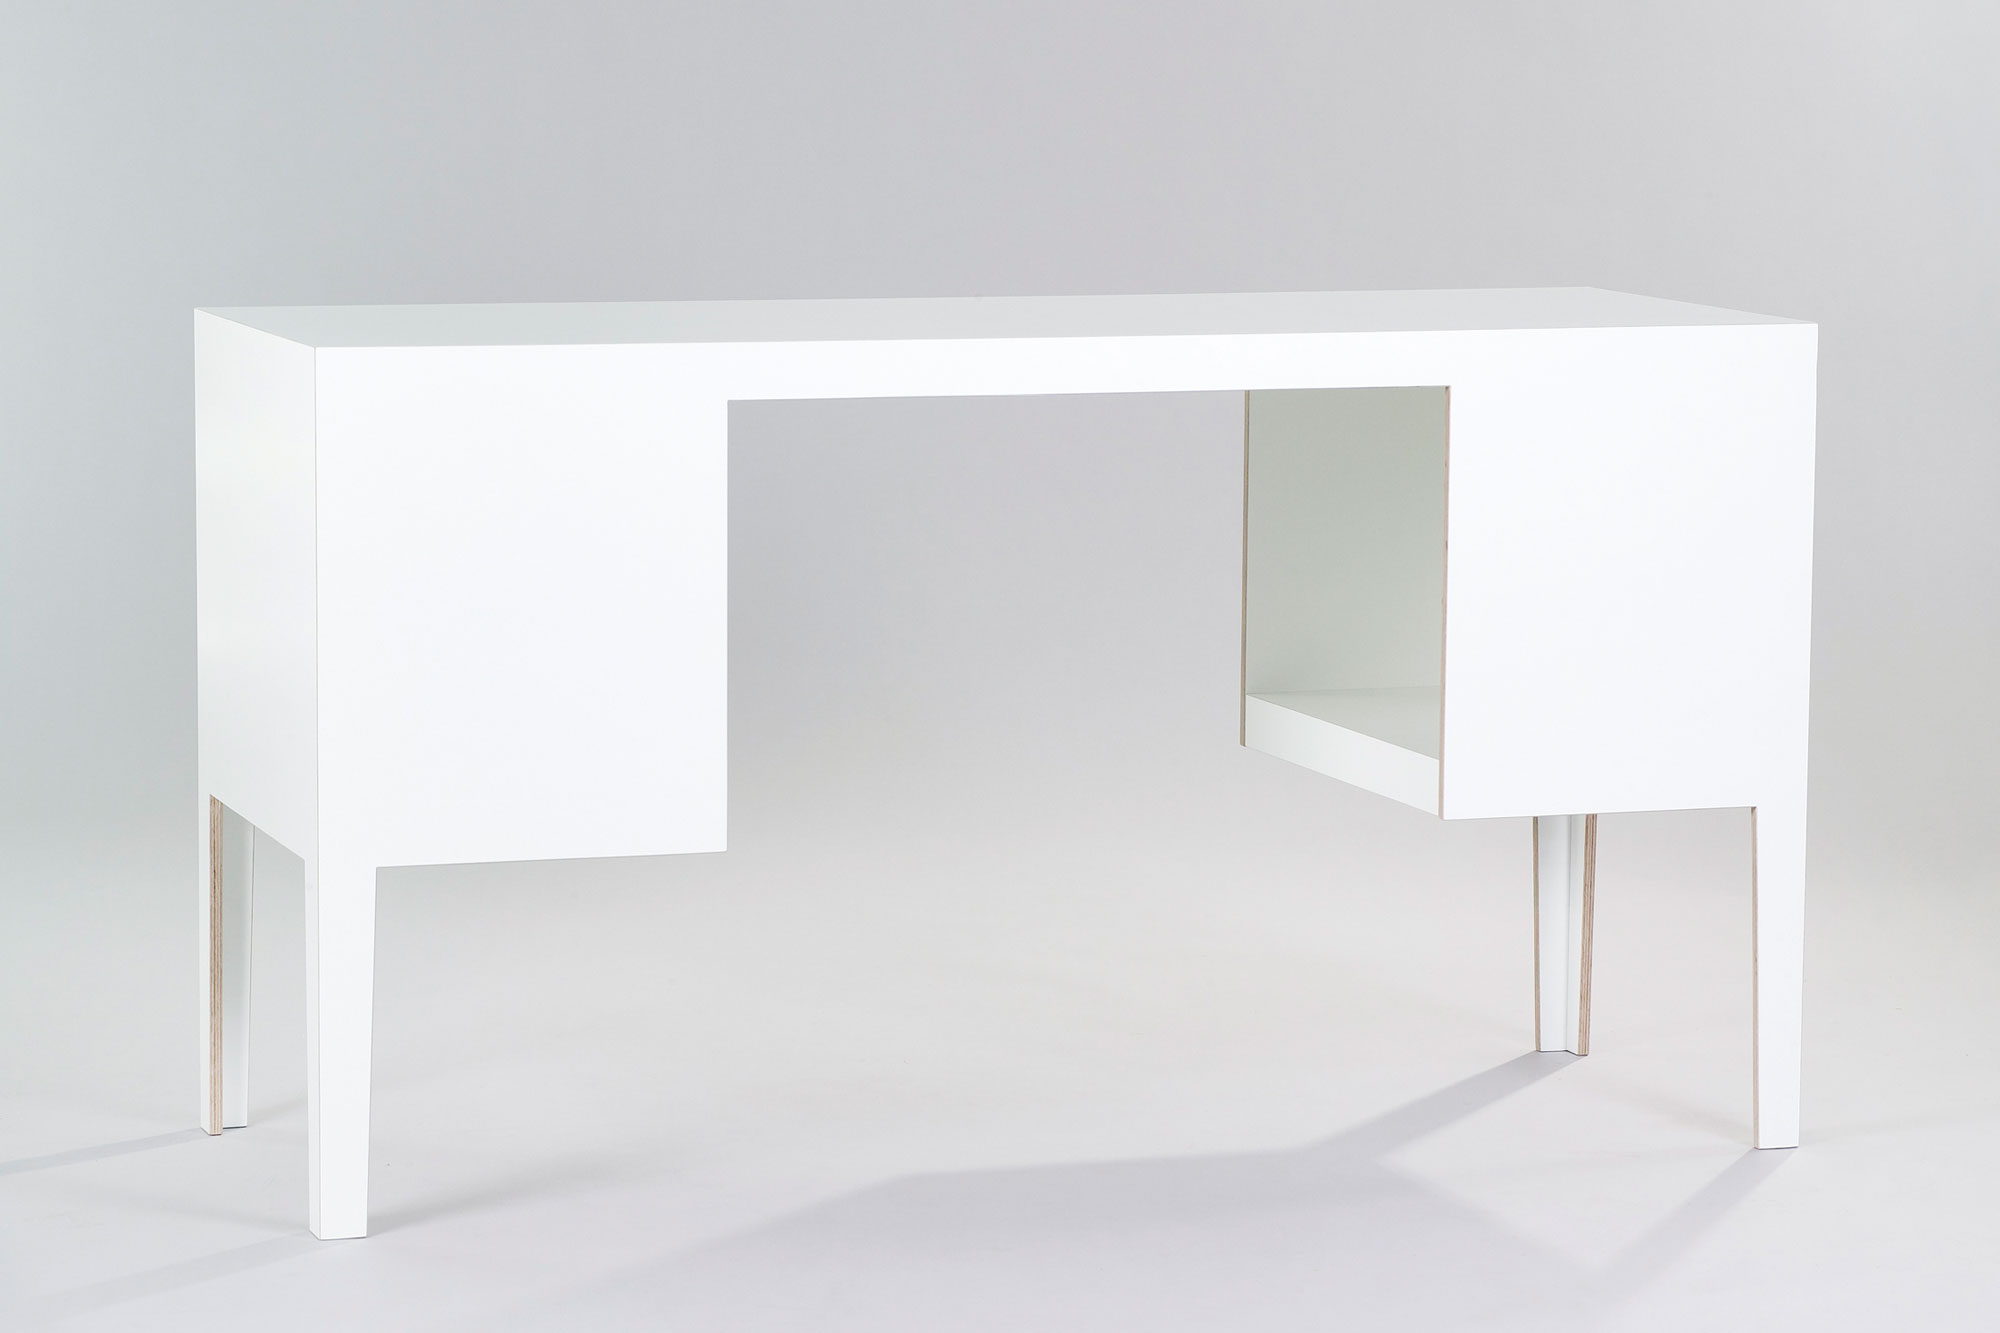 000-morgen-kollektion-desk-1